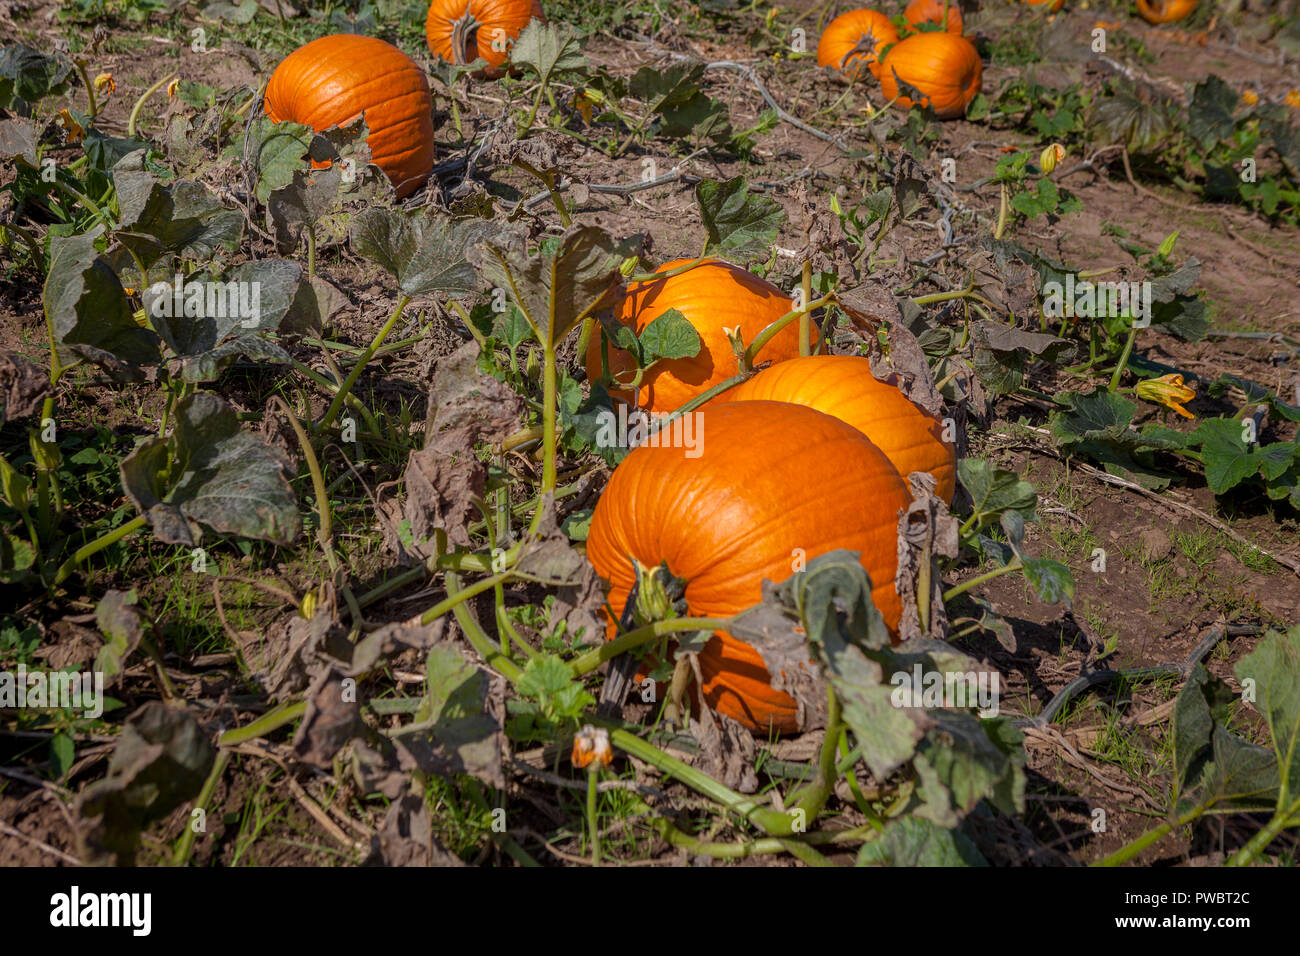 Hamilton, CANADA - October 14, 2018: orange pumpkins at outdoor pumpkin patch field at farmer market in nature Stock Photo